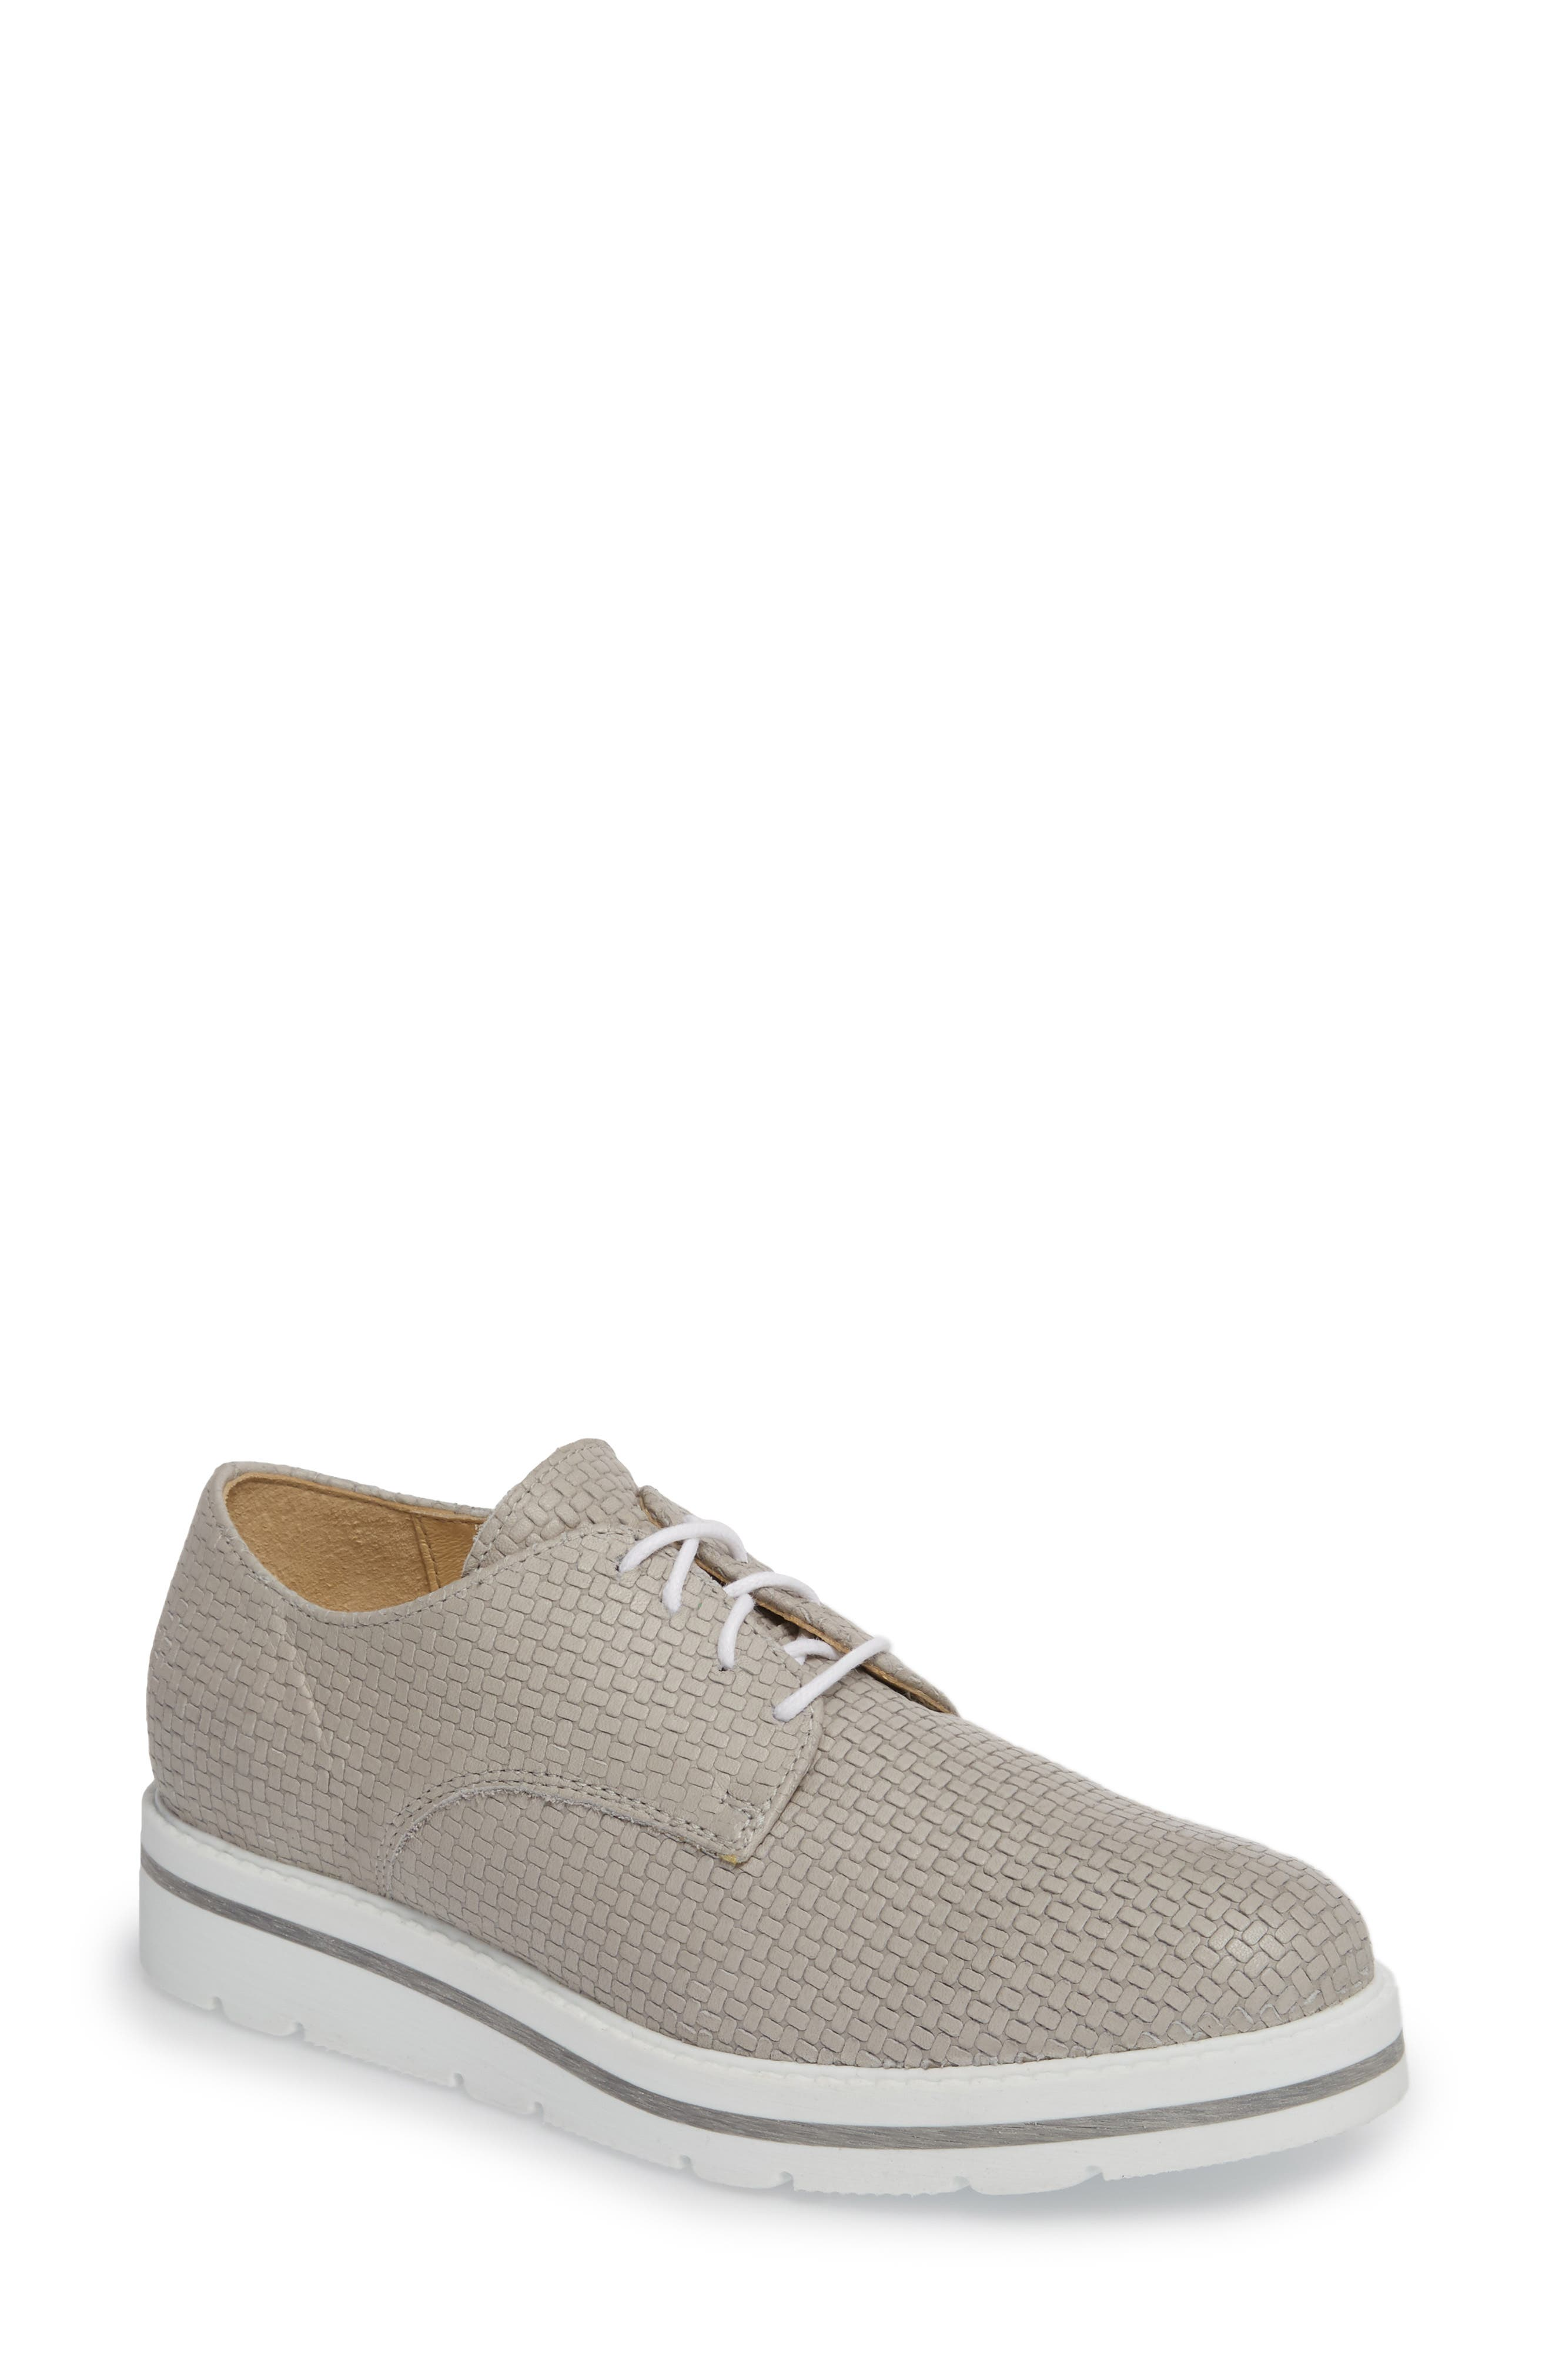 Lando Sneaker Derby,                             Main thumbnail 1, color,                             Light Grey Sauvage Leather